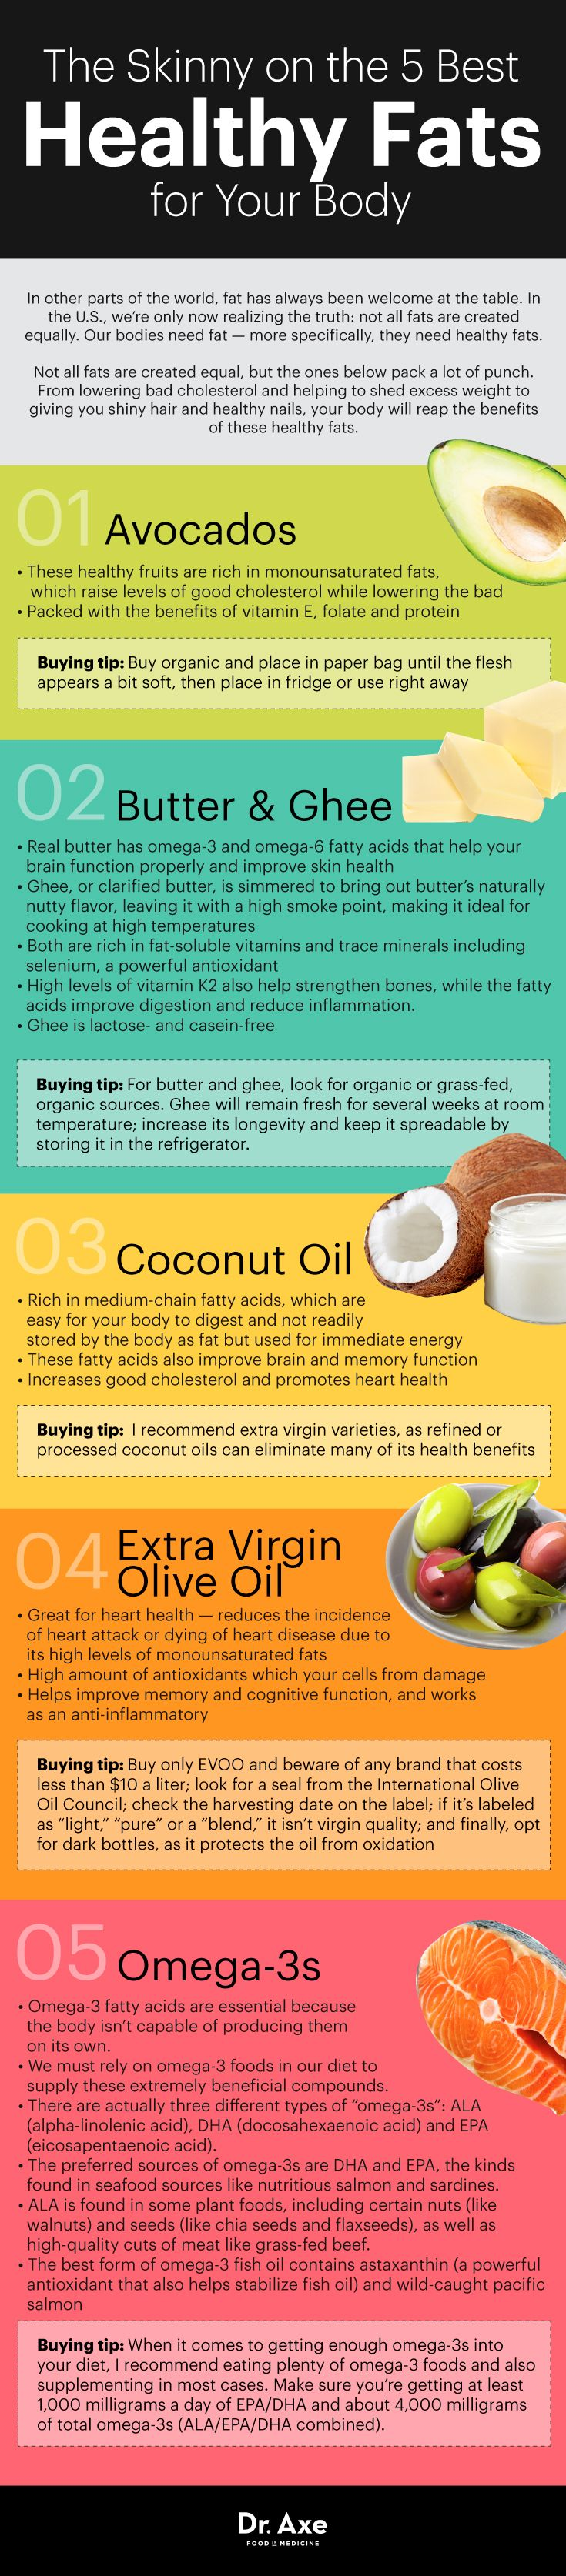 The 5 Best Healthy Fats for Your Body - Dr. Axe Guide to healthy fats infographic - Dr. Axe http://www.draxe.com #health #holistic #natural